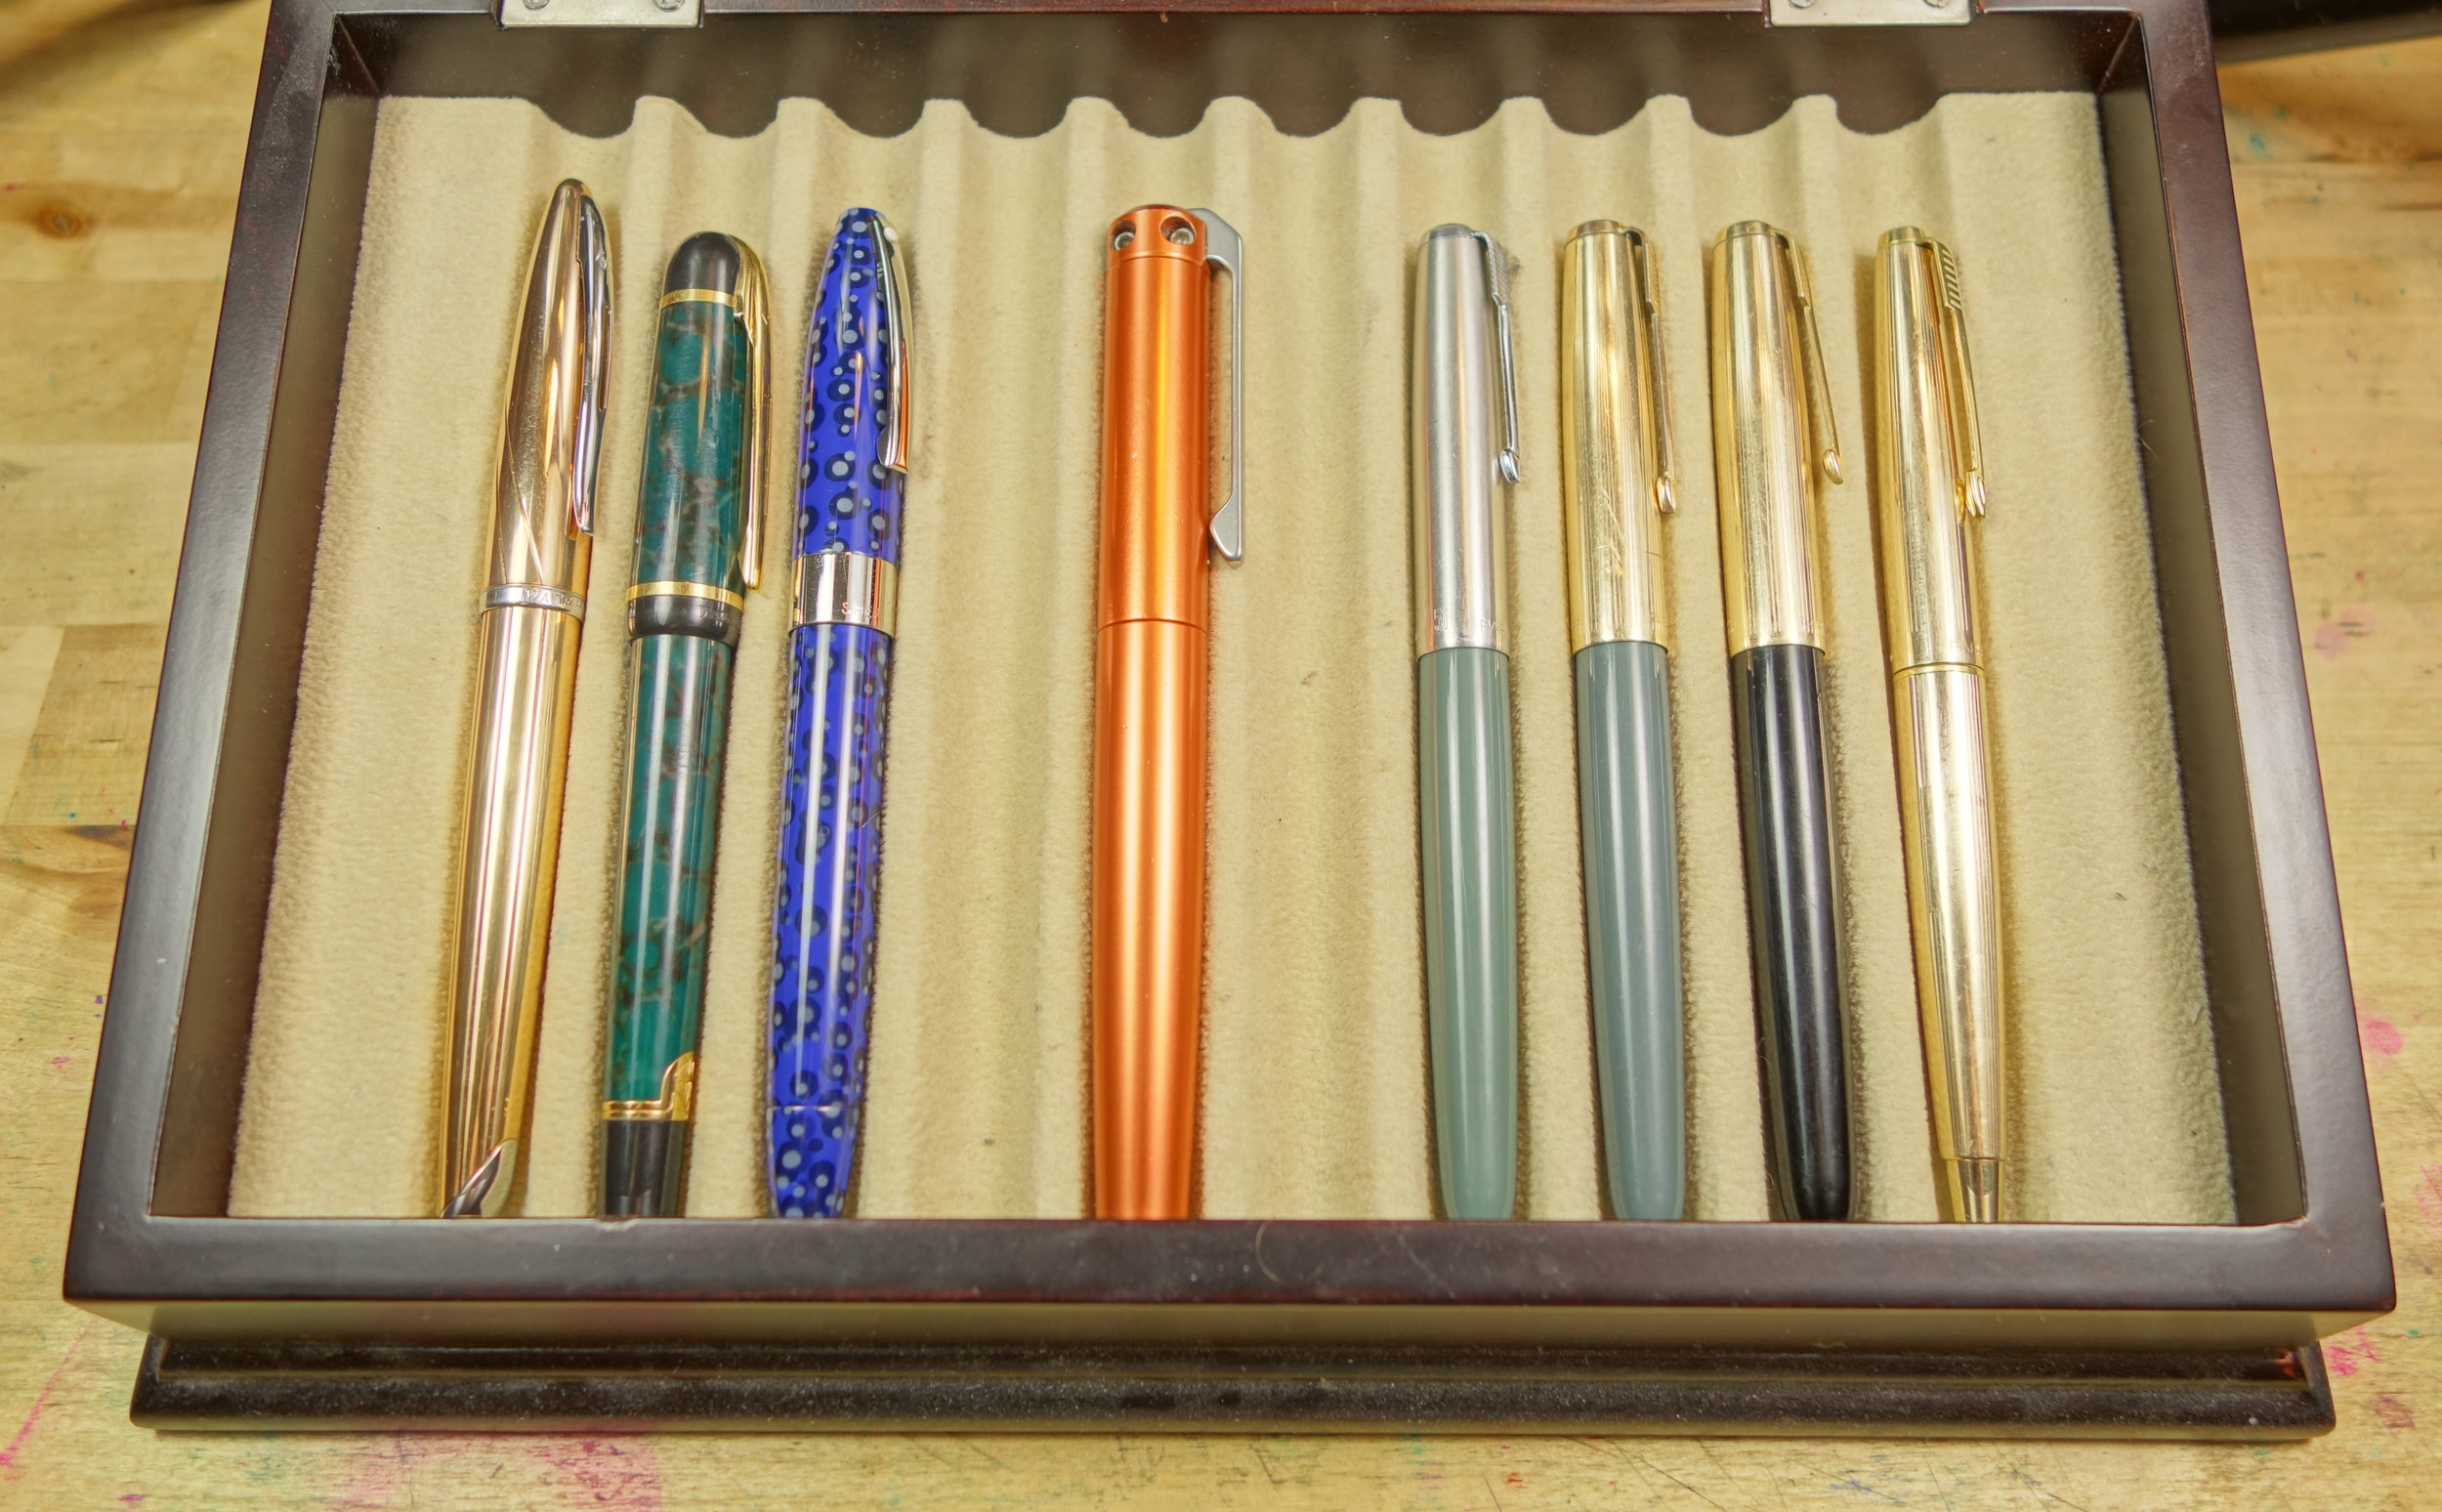 2/3 Waterman, Shaeffer, Karas Kustoms, and Parker